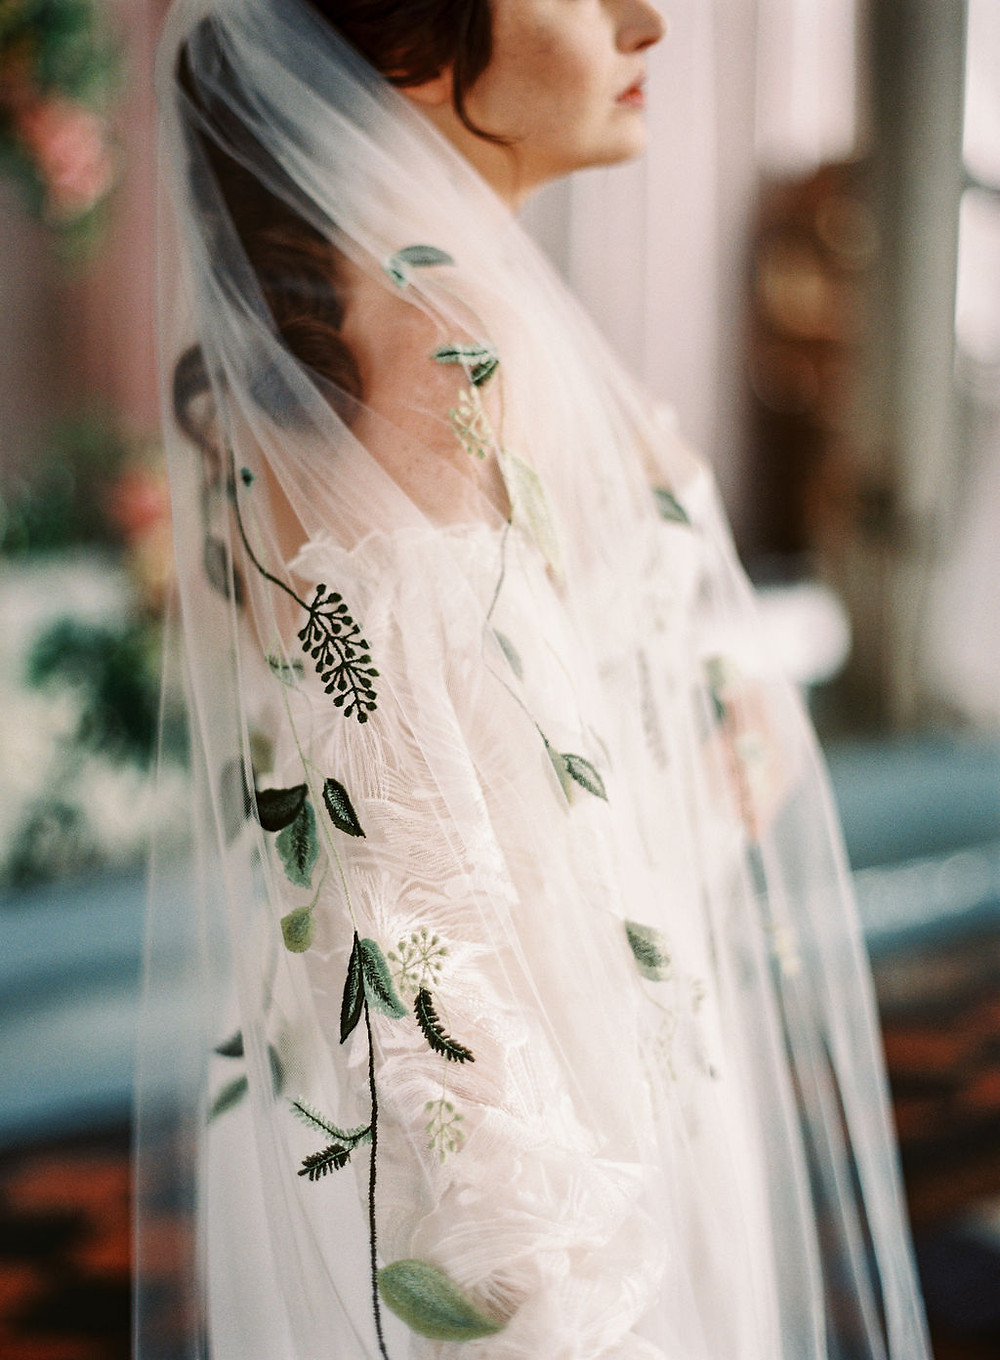 Bride with Floral Embroidered Bridal Veil for Bridgerton Inspired Wedding at the Marigny Opera House in New Orleans with Decor and Vintage Furniture by Lovegood Rentals